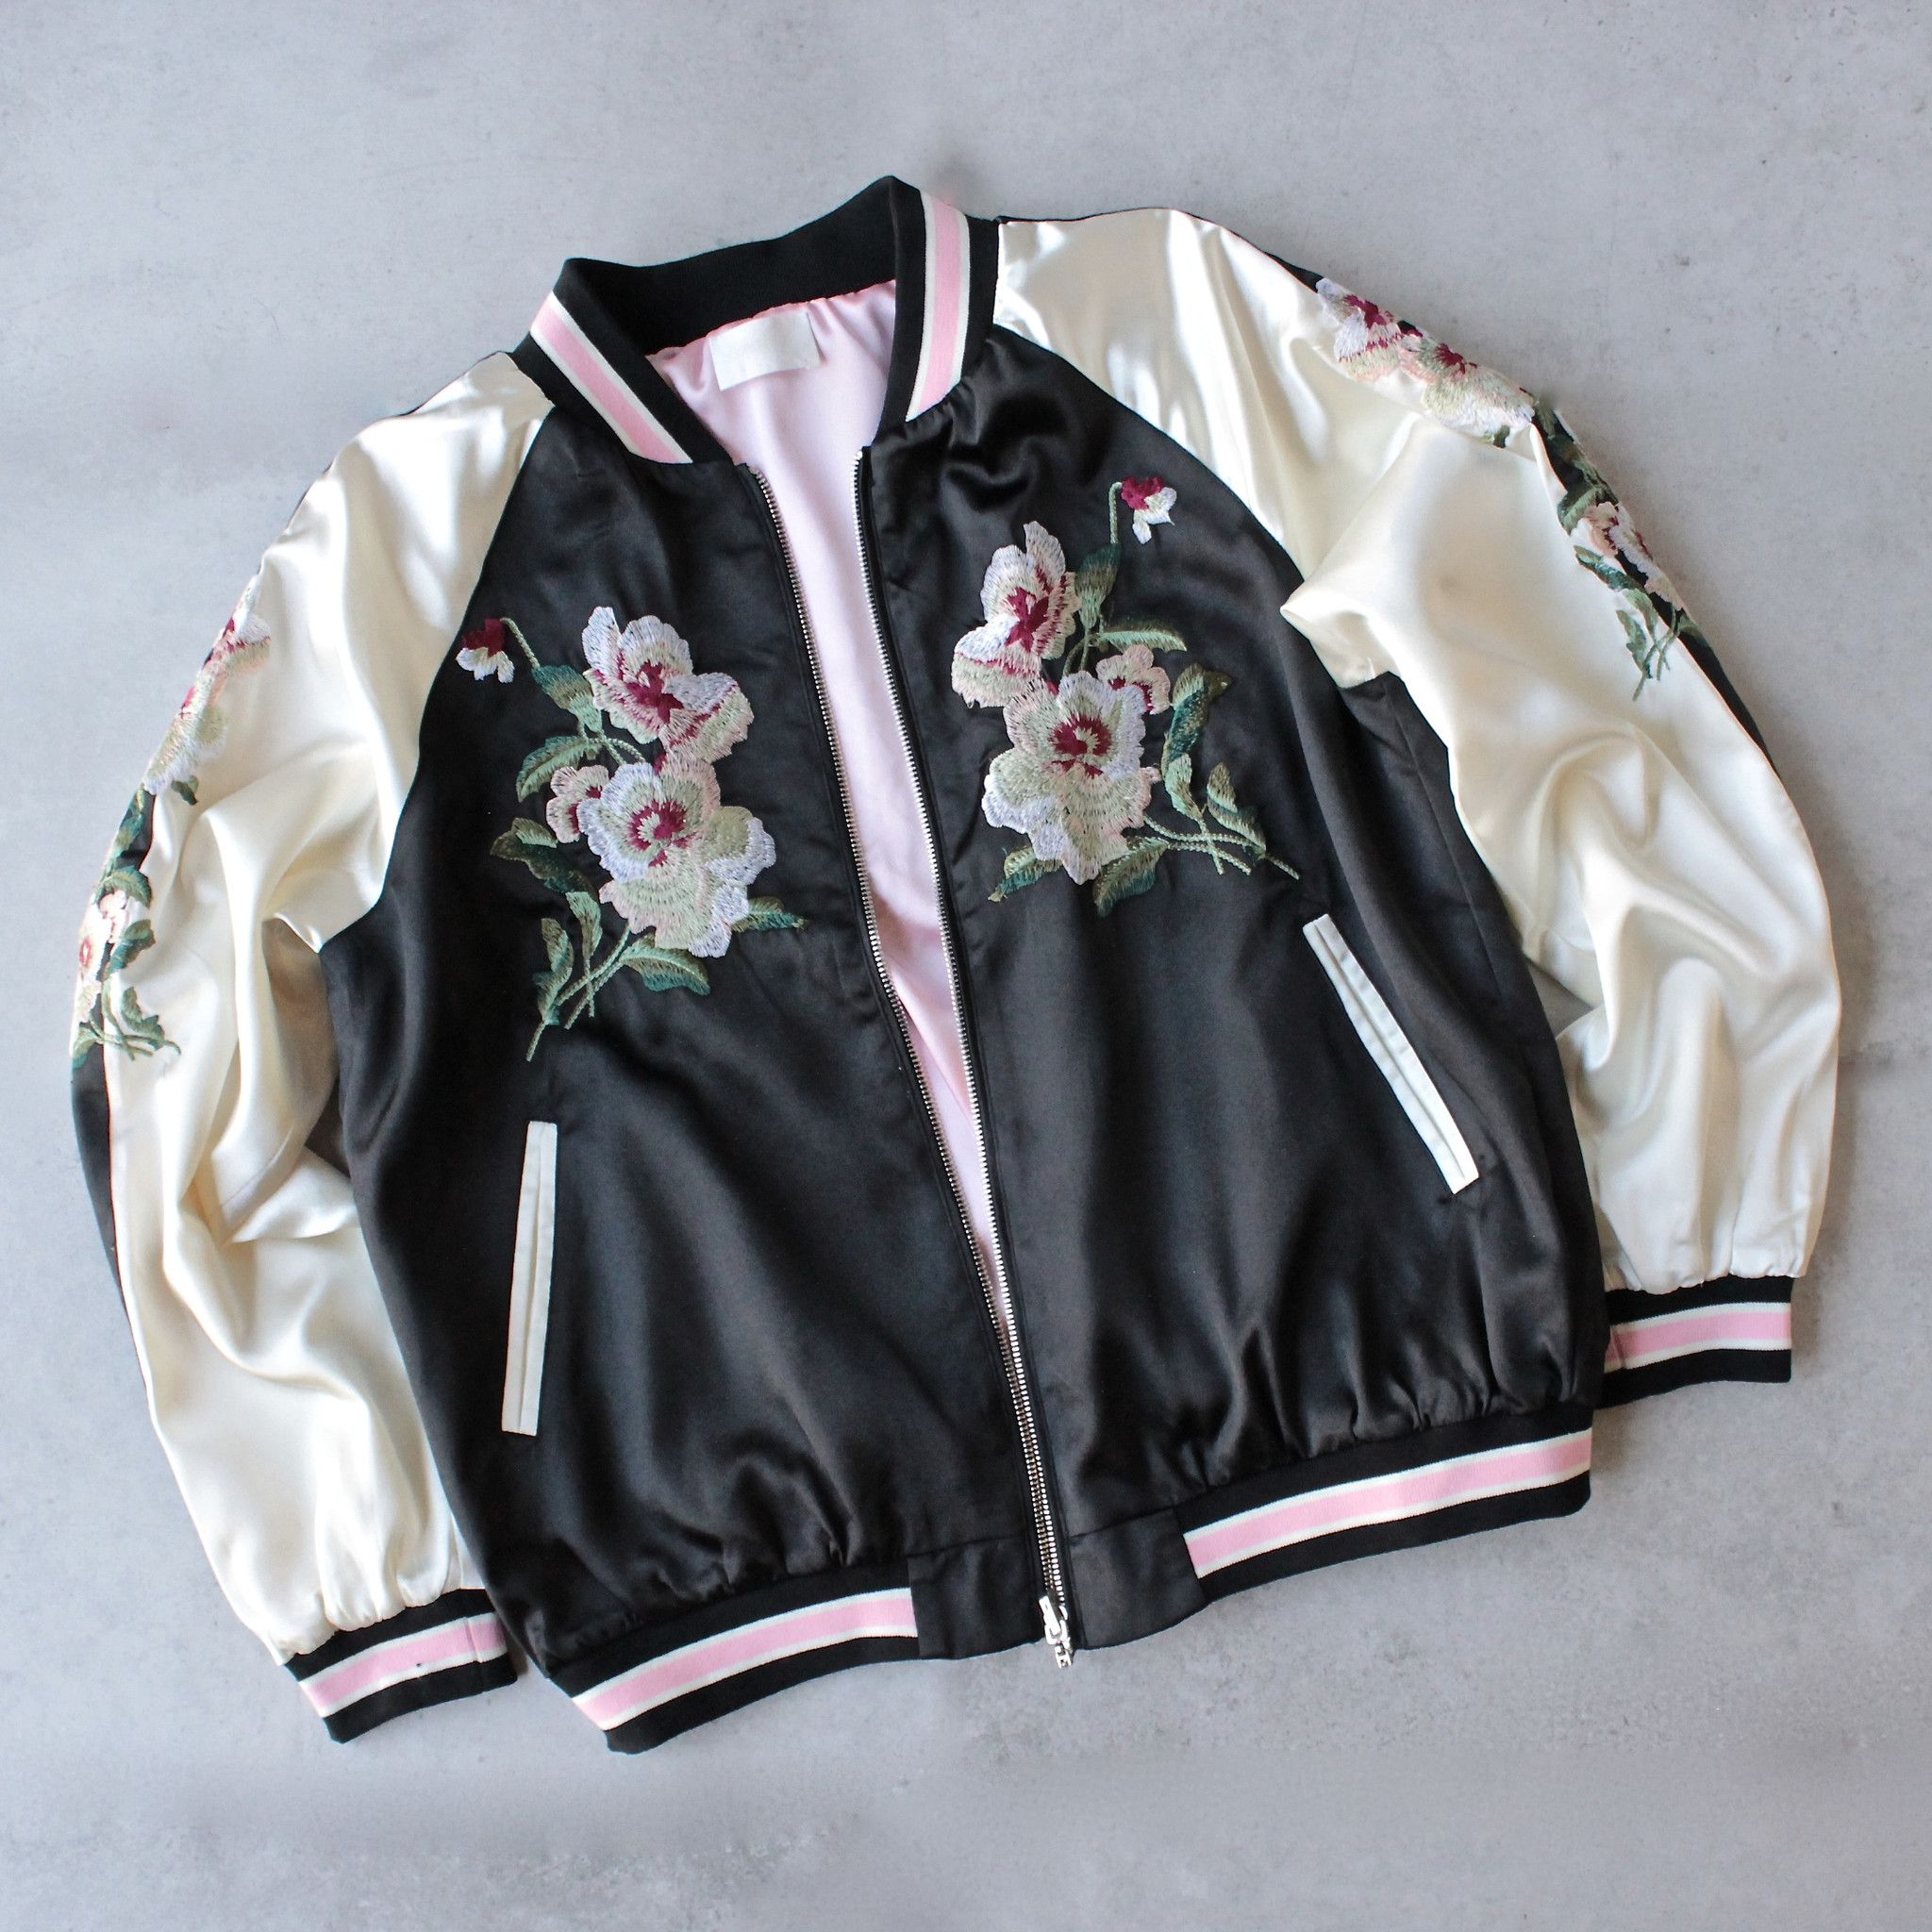 Reversible Floral Embroidered Bomber Jacket Shophearts 1 Embroidered Bomber Jacket Jackets Bomber Jacket Outfit [ 2048 x 2048 Pixel ]